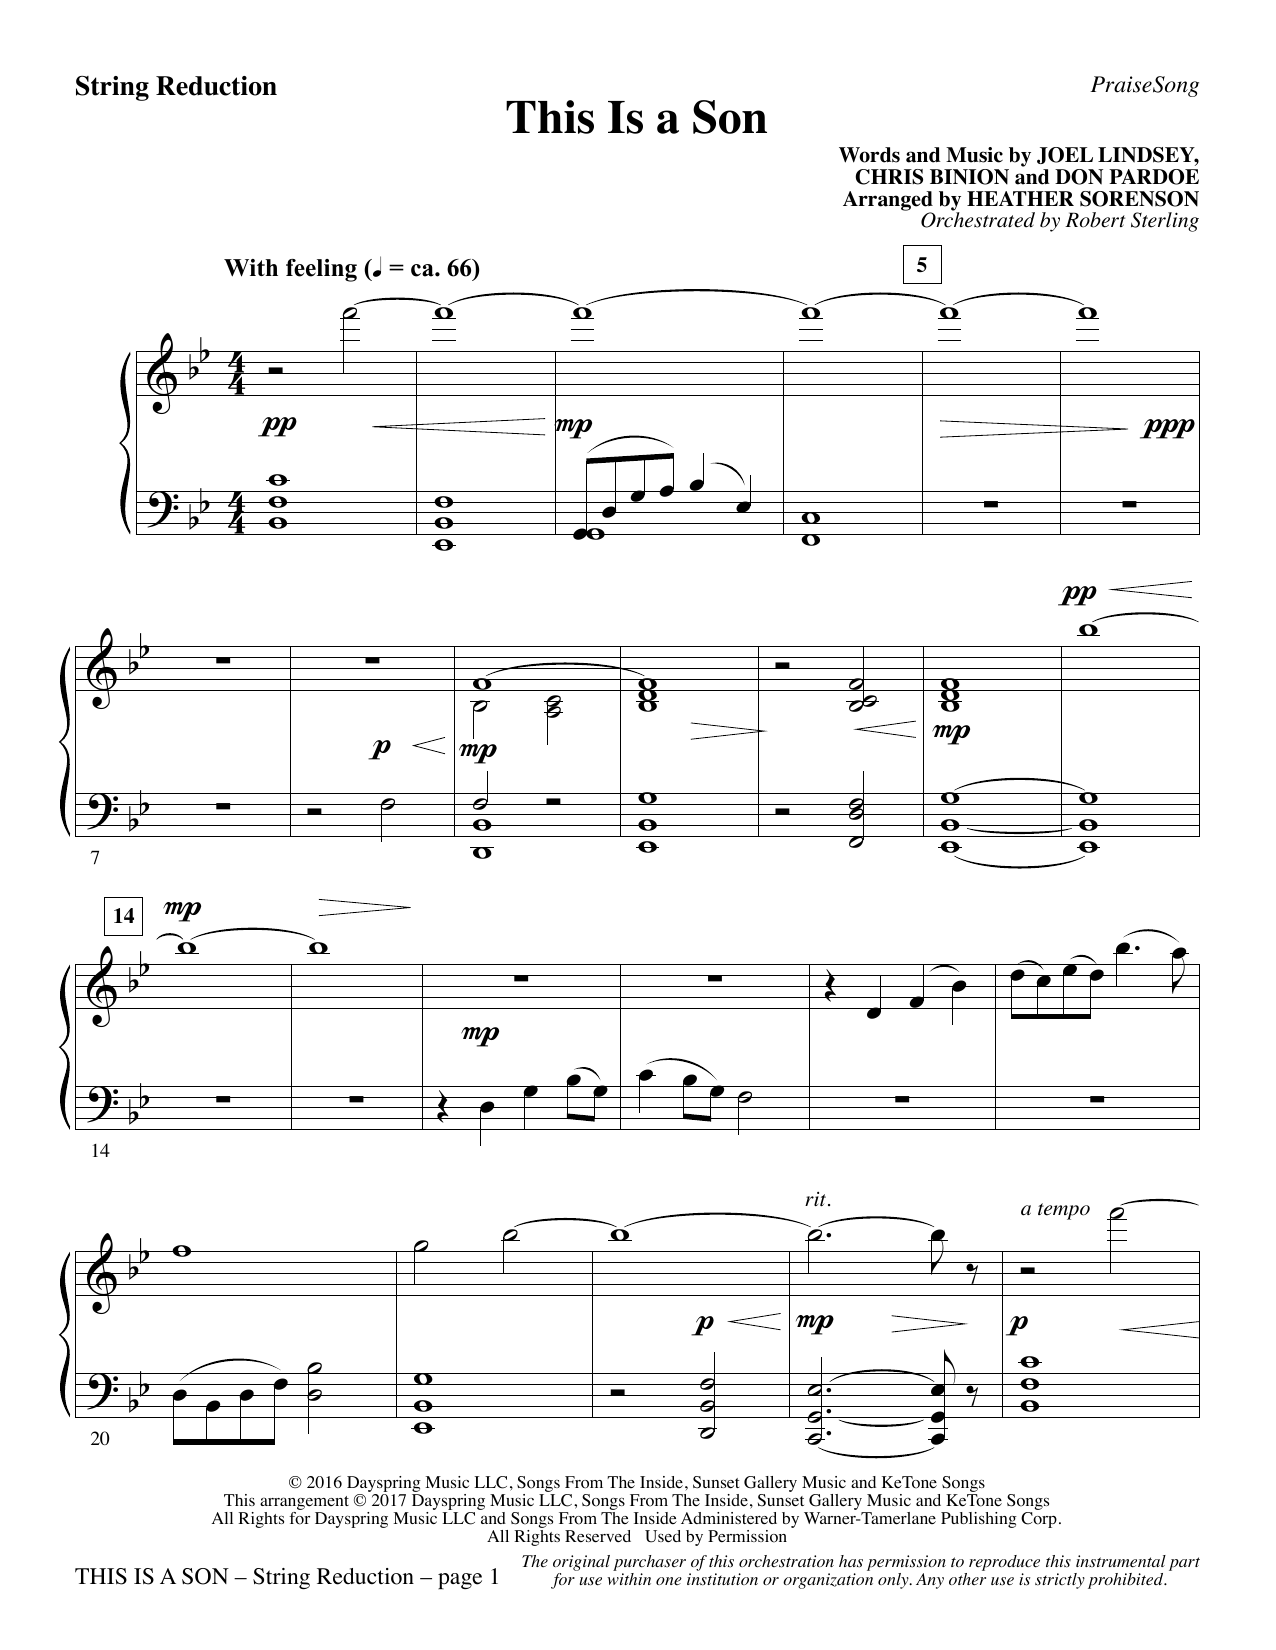 This Is a Son - Keyboard String Reduction Sheet Music